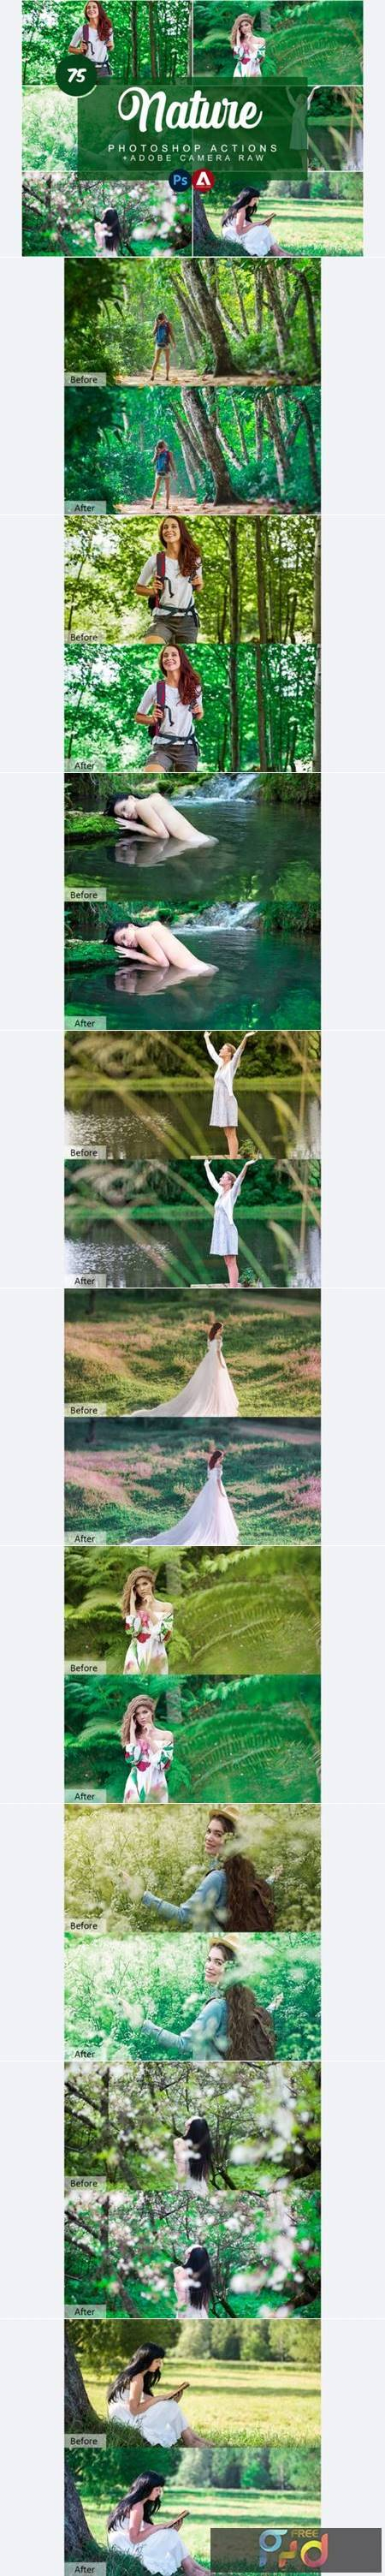 Nature Photoshop Actions 7500561 1